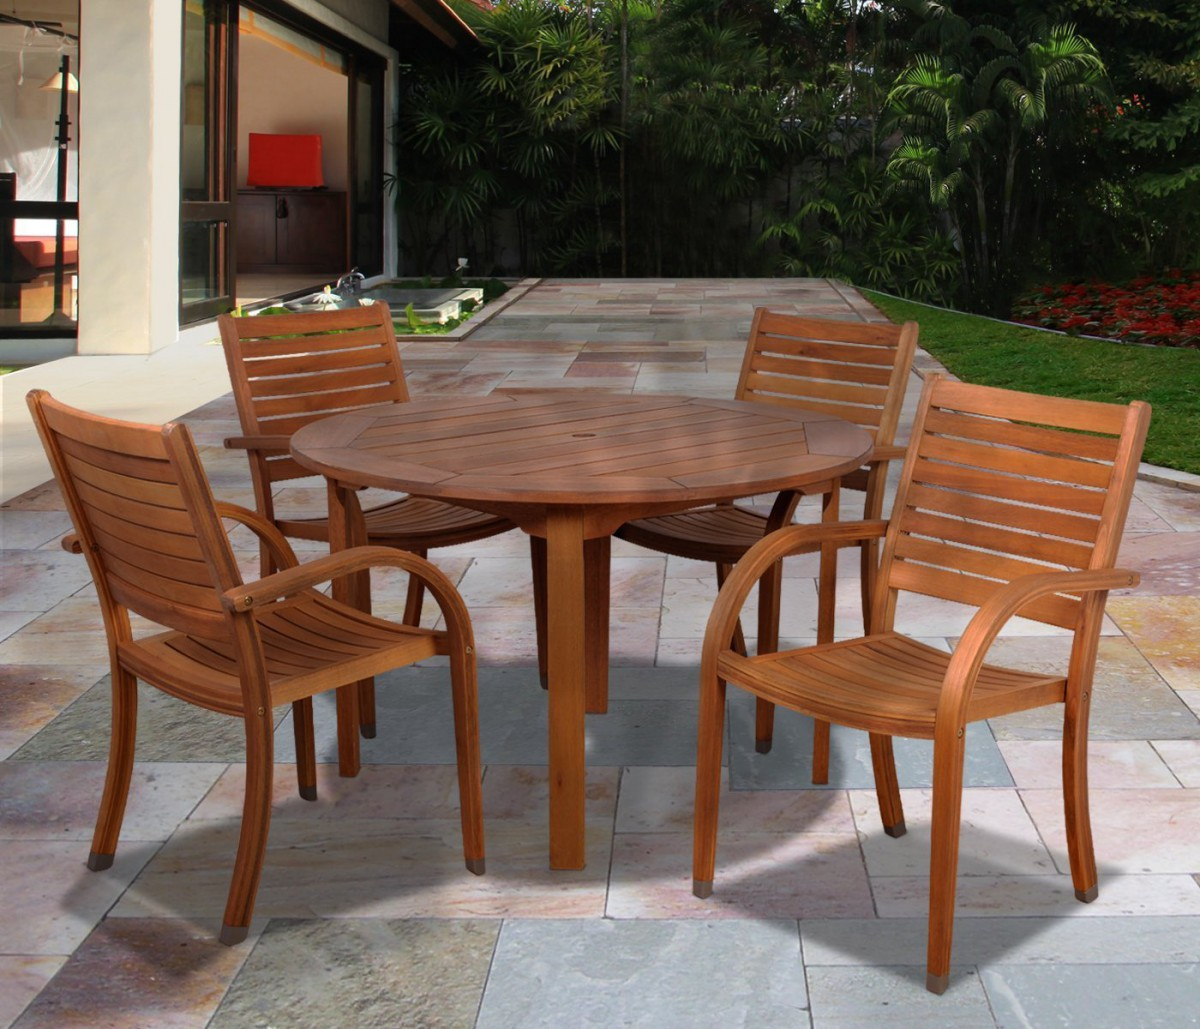 Amazonia arizona 5 piece wood outdoor dining set with 47 for Outdoor patio table set